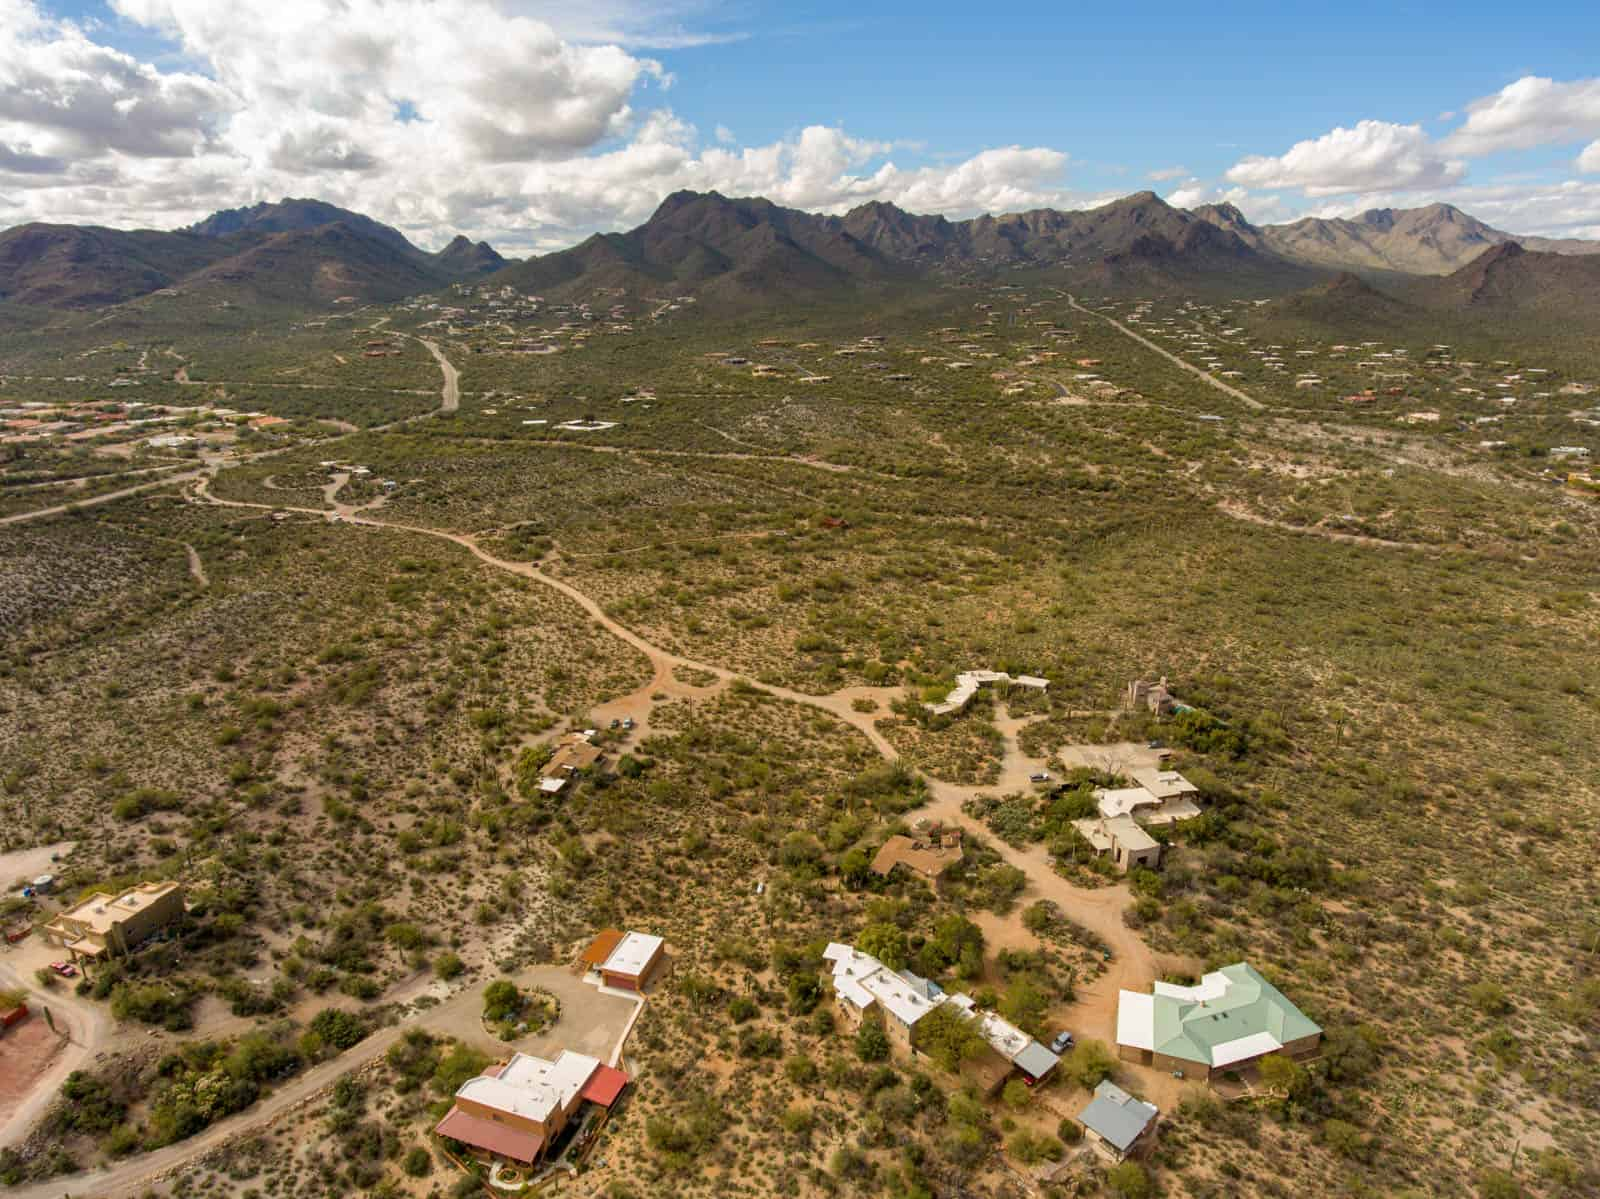 drone photo of residential properties in Tucson, AZ